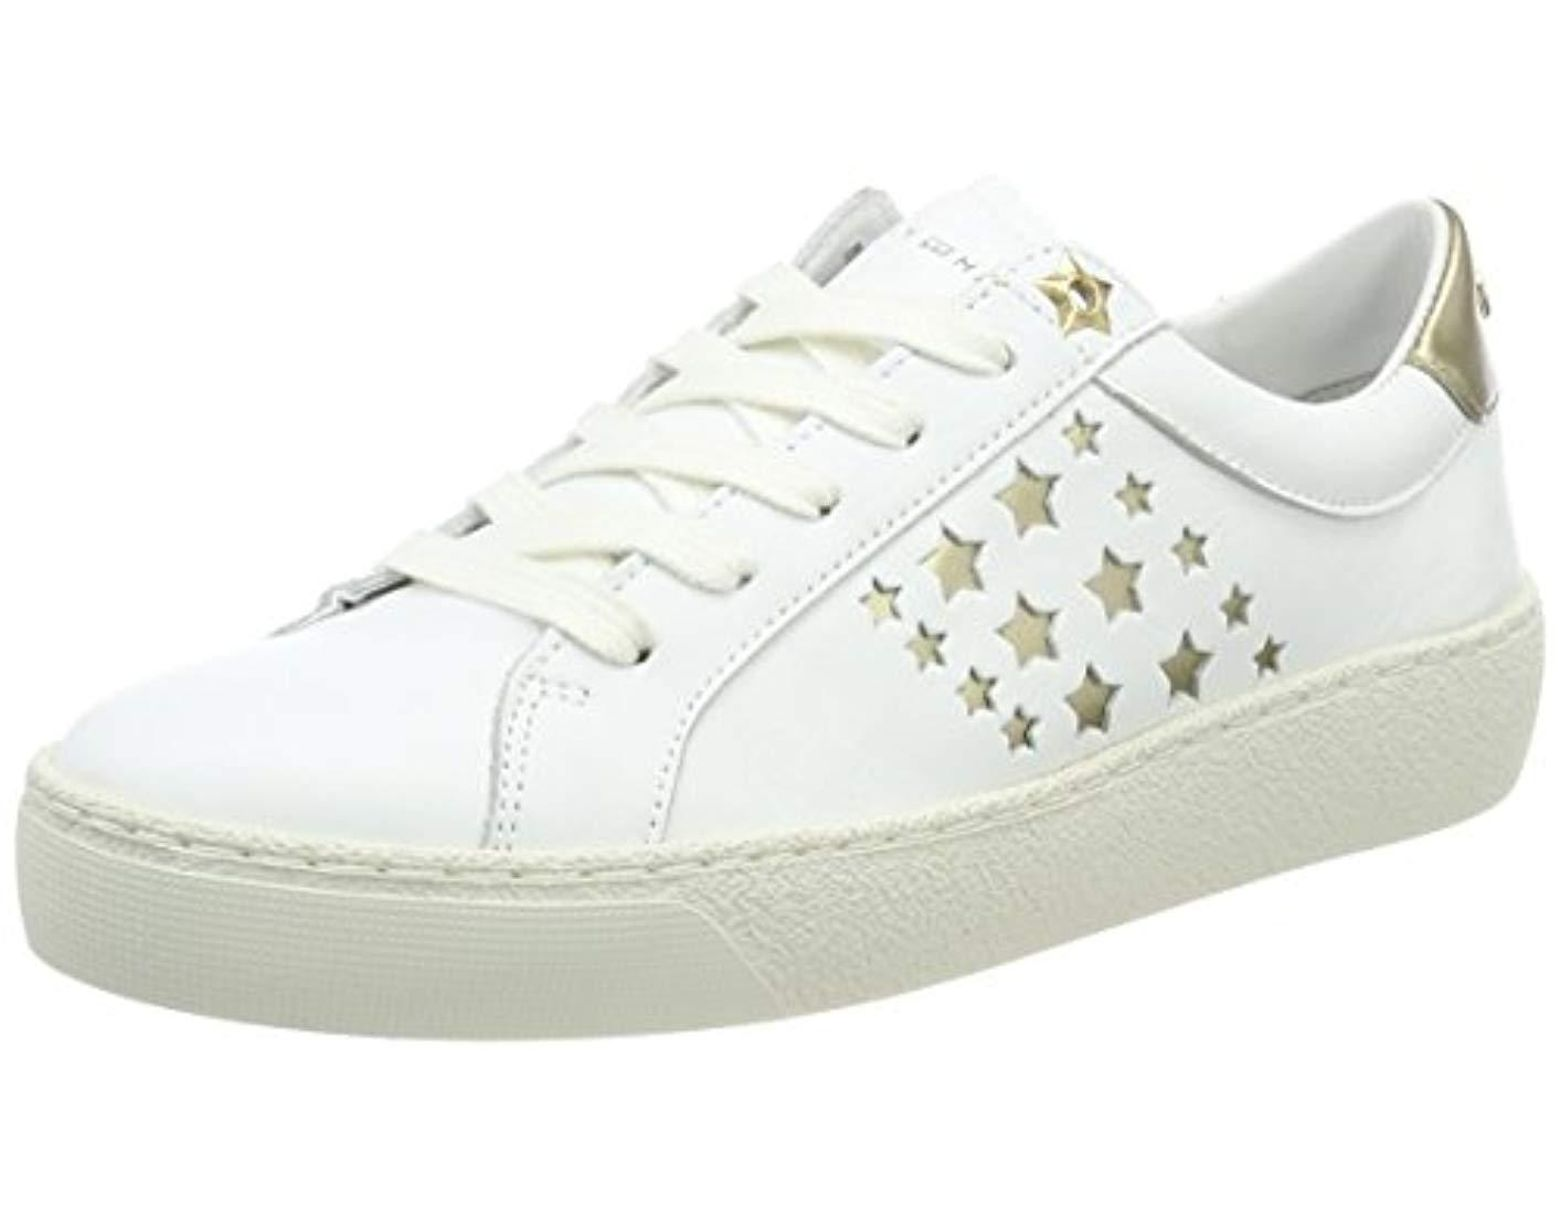 Hilfiger T1285ina 15a2Sneakers Hilfiger T1285ina Tommy B B 15a2Sneakers Tommy Hilfiger Tommy ymOnw8PvN0